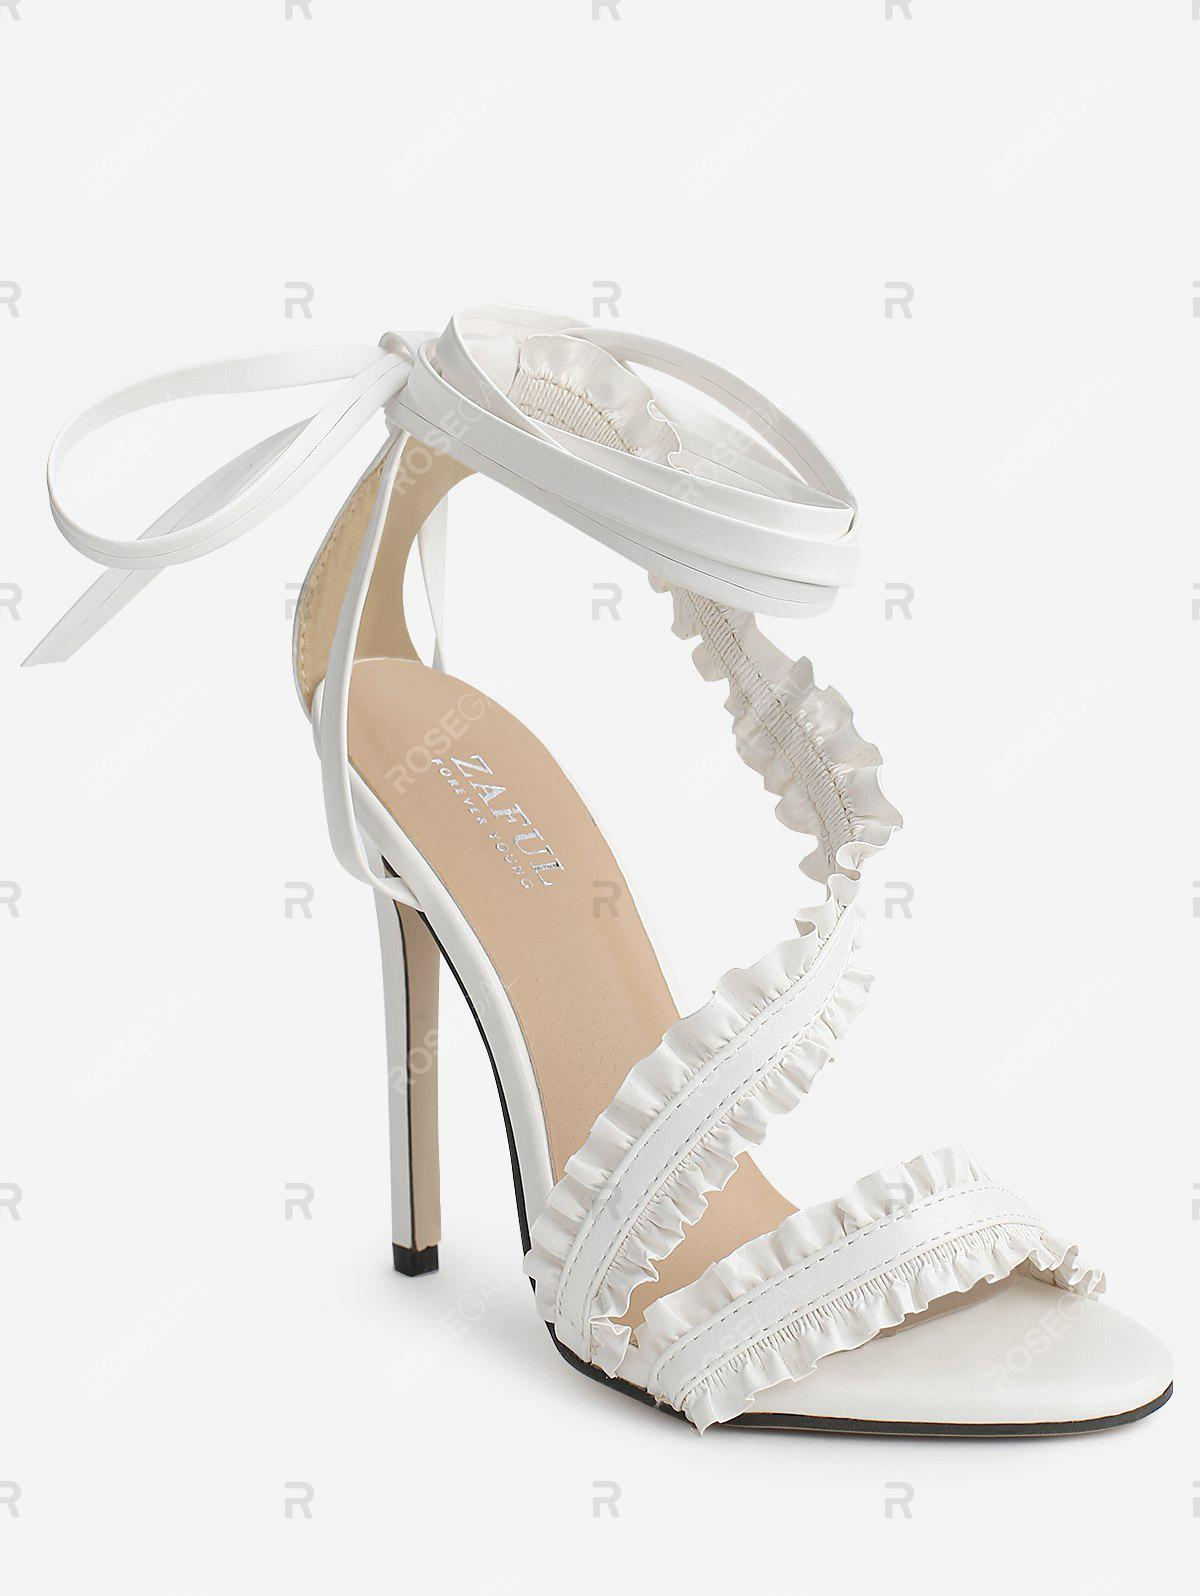 Talon stiletto Lace Up Ruffles Sandales à bride à la cheville